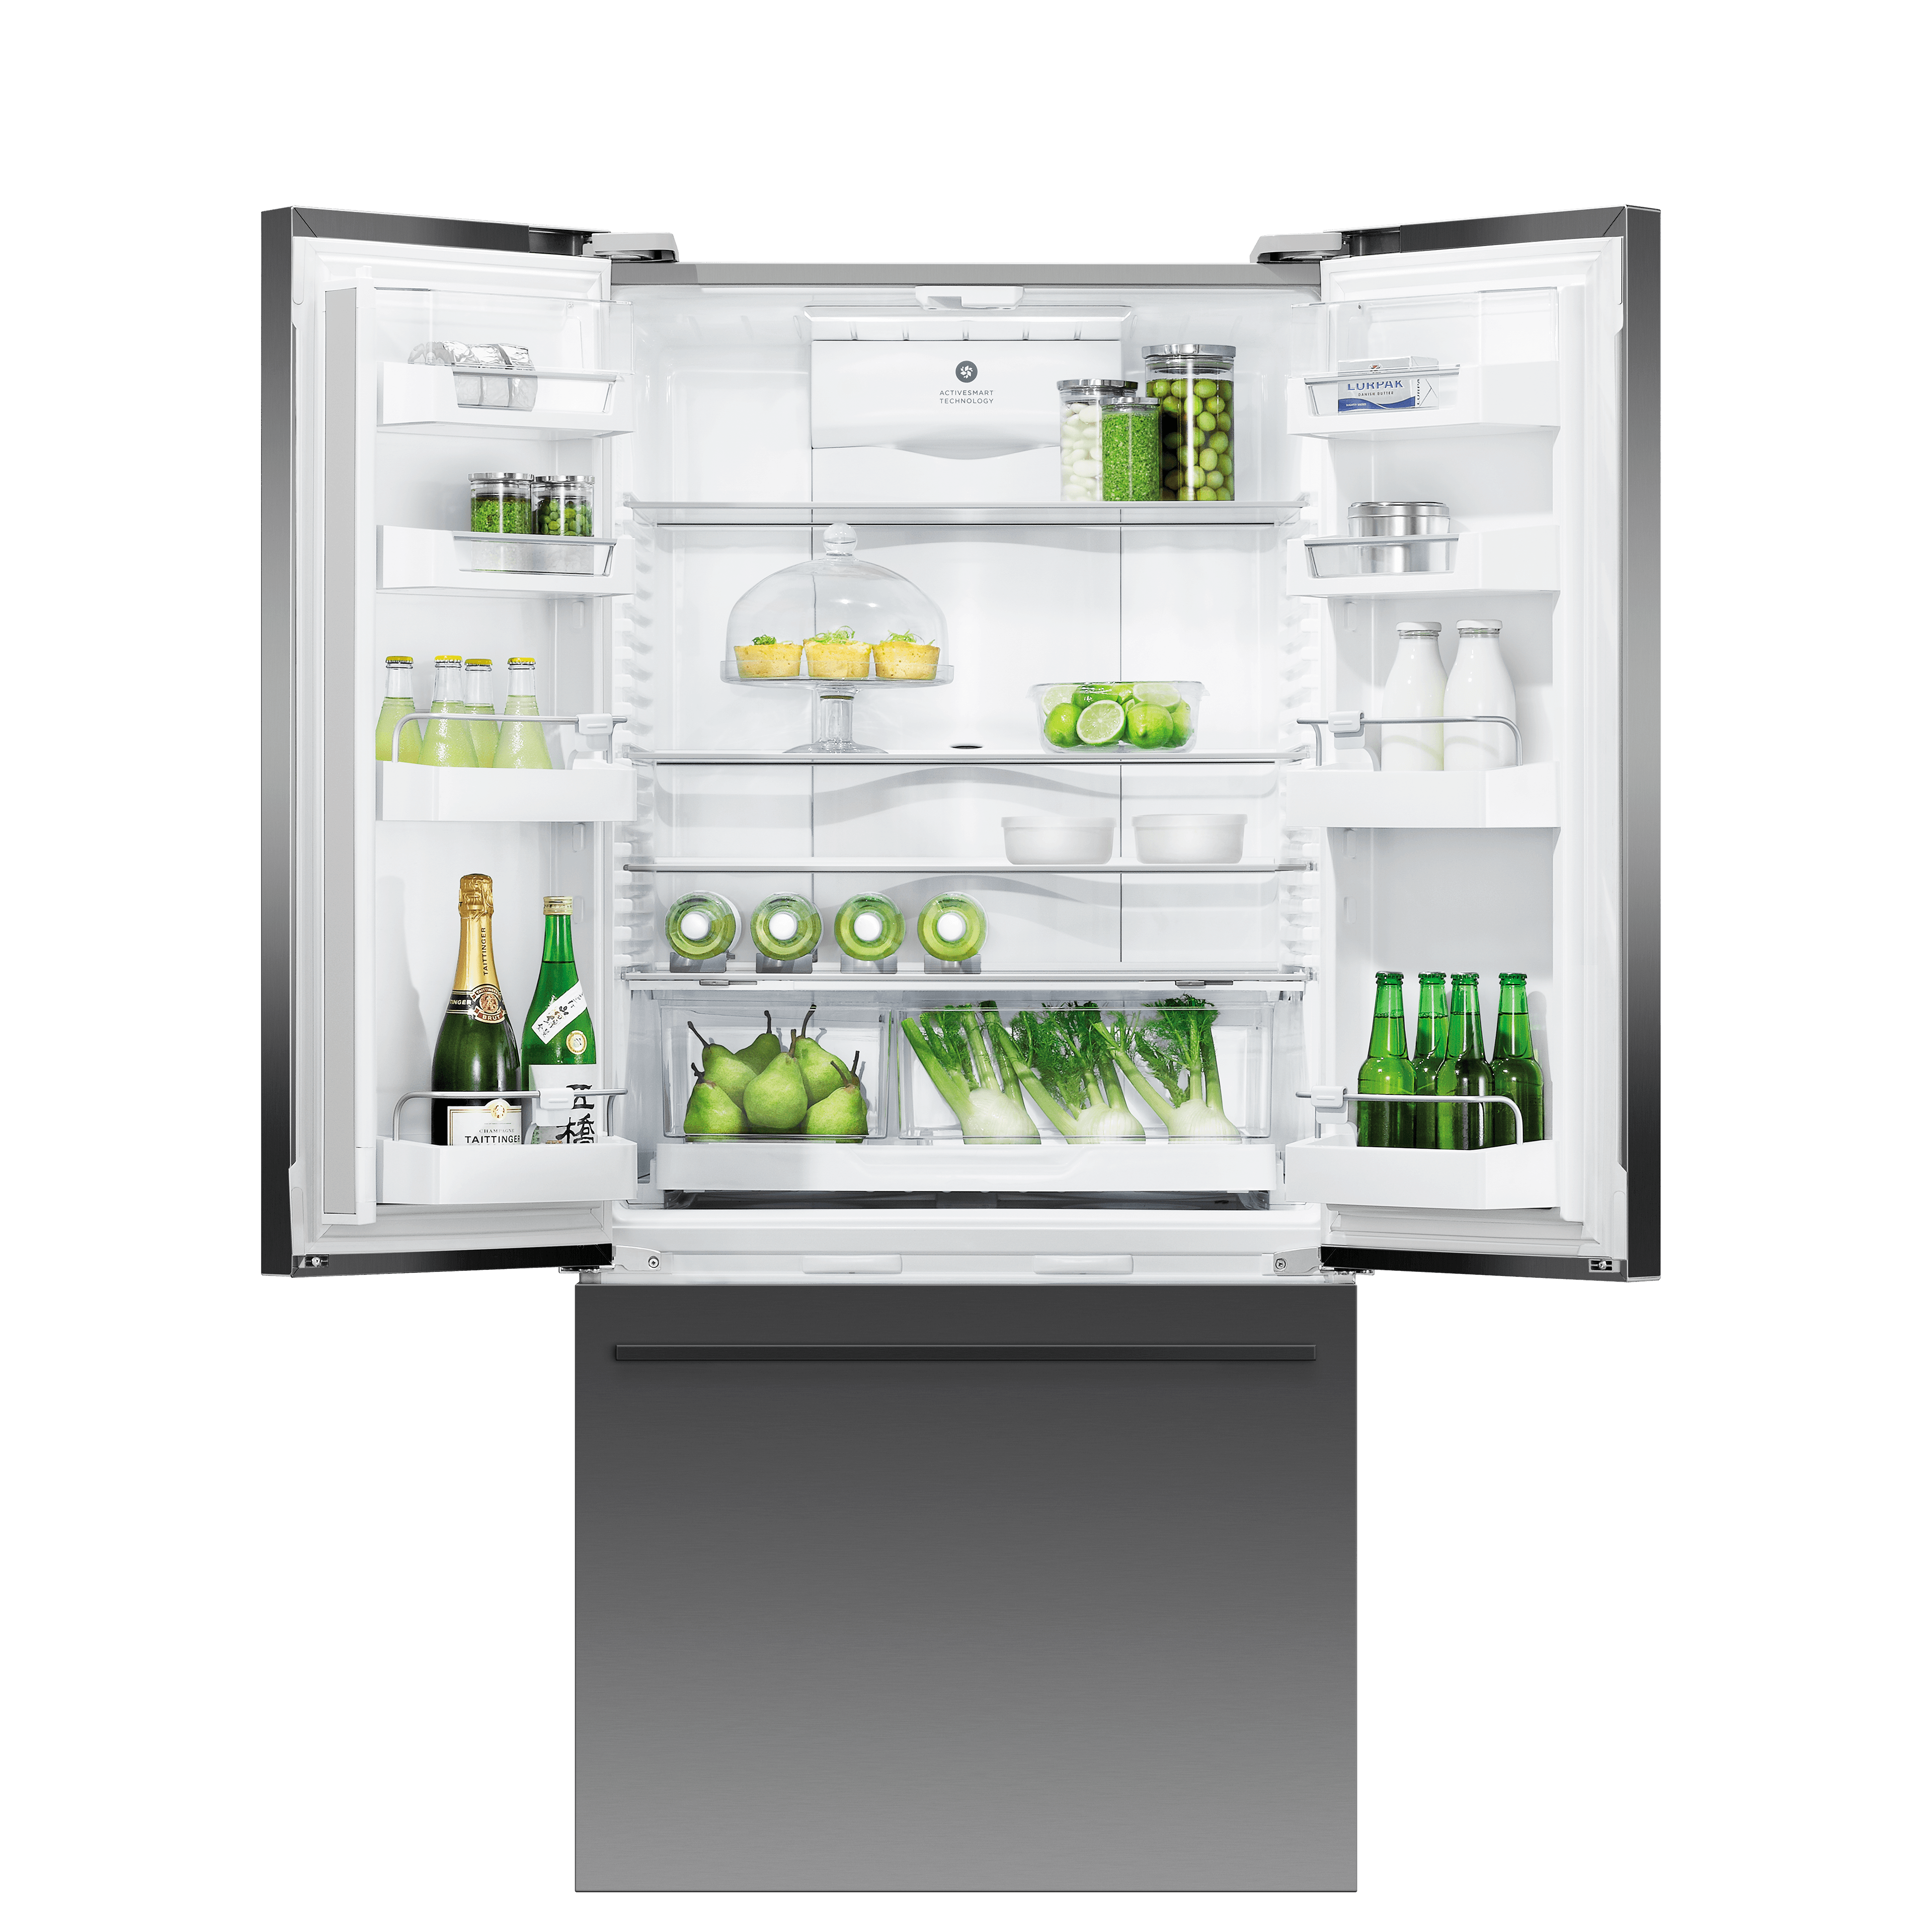 Model: RF170ADUSB5 | Black Stainless Steel French Door Refrigerator, 17 cu ft, Ice & Water